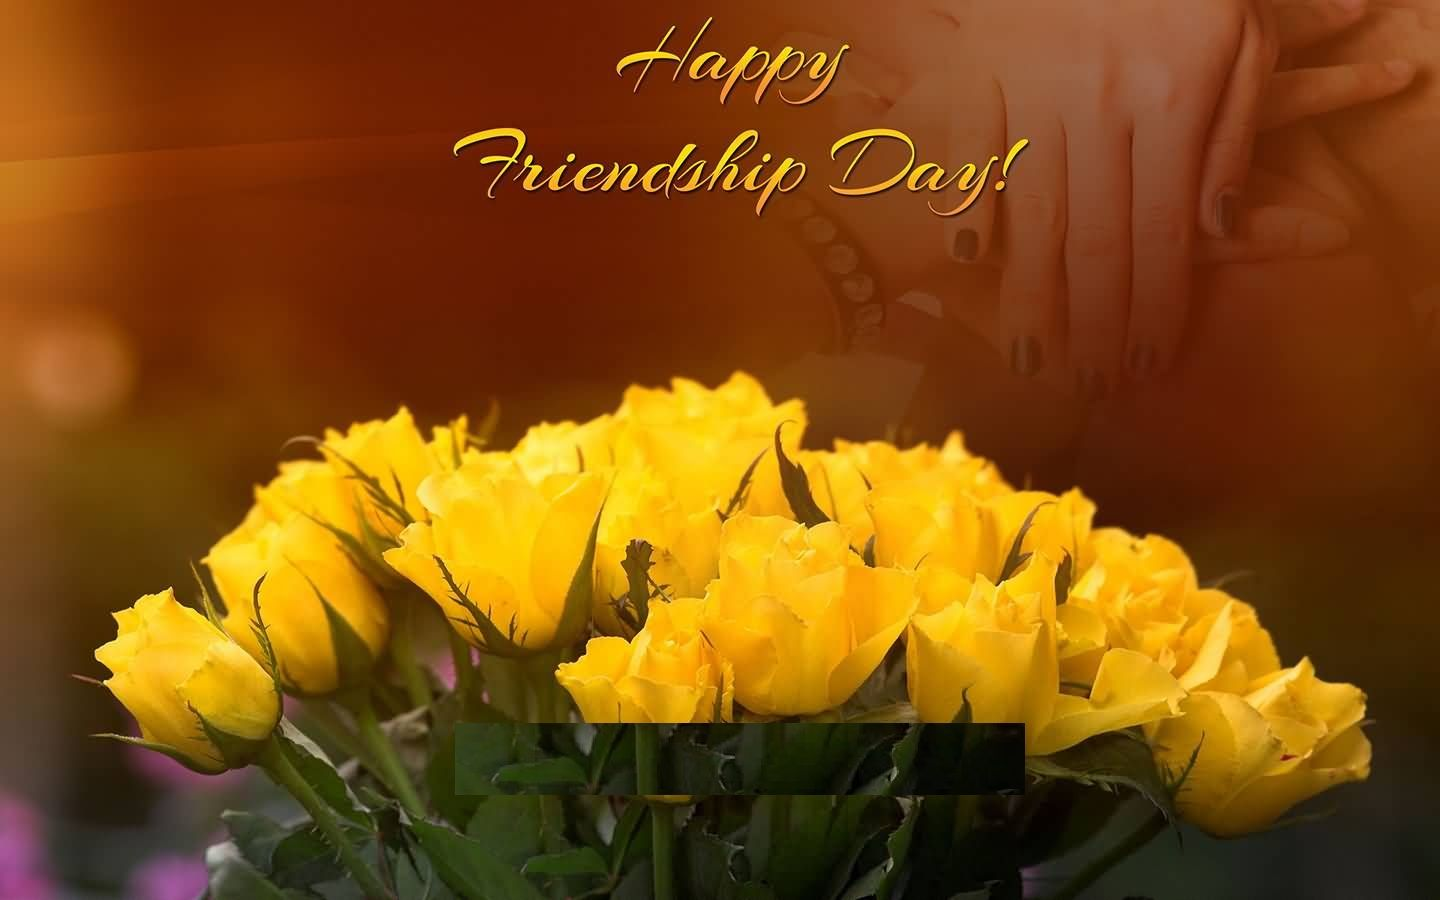 Happy Friendship Day Yellow Rose Photo Friendship Day Images Happy Friendship Day Friendship Day Wishes